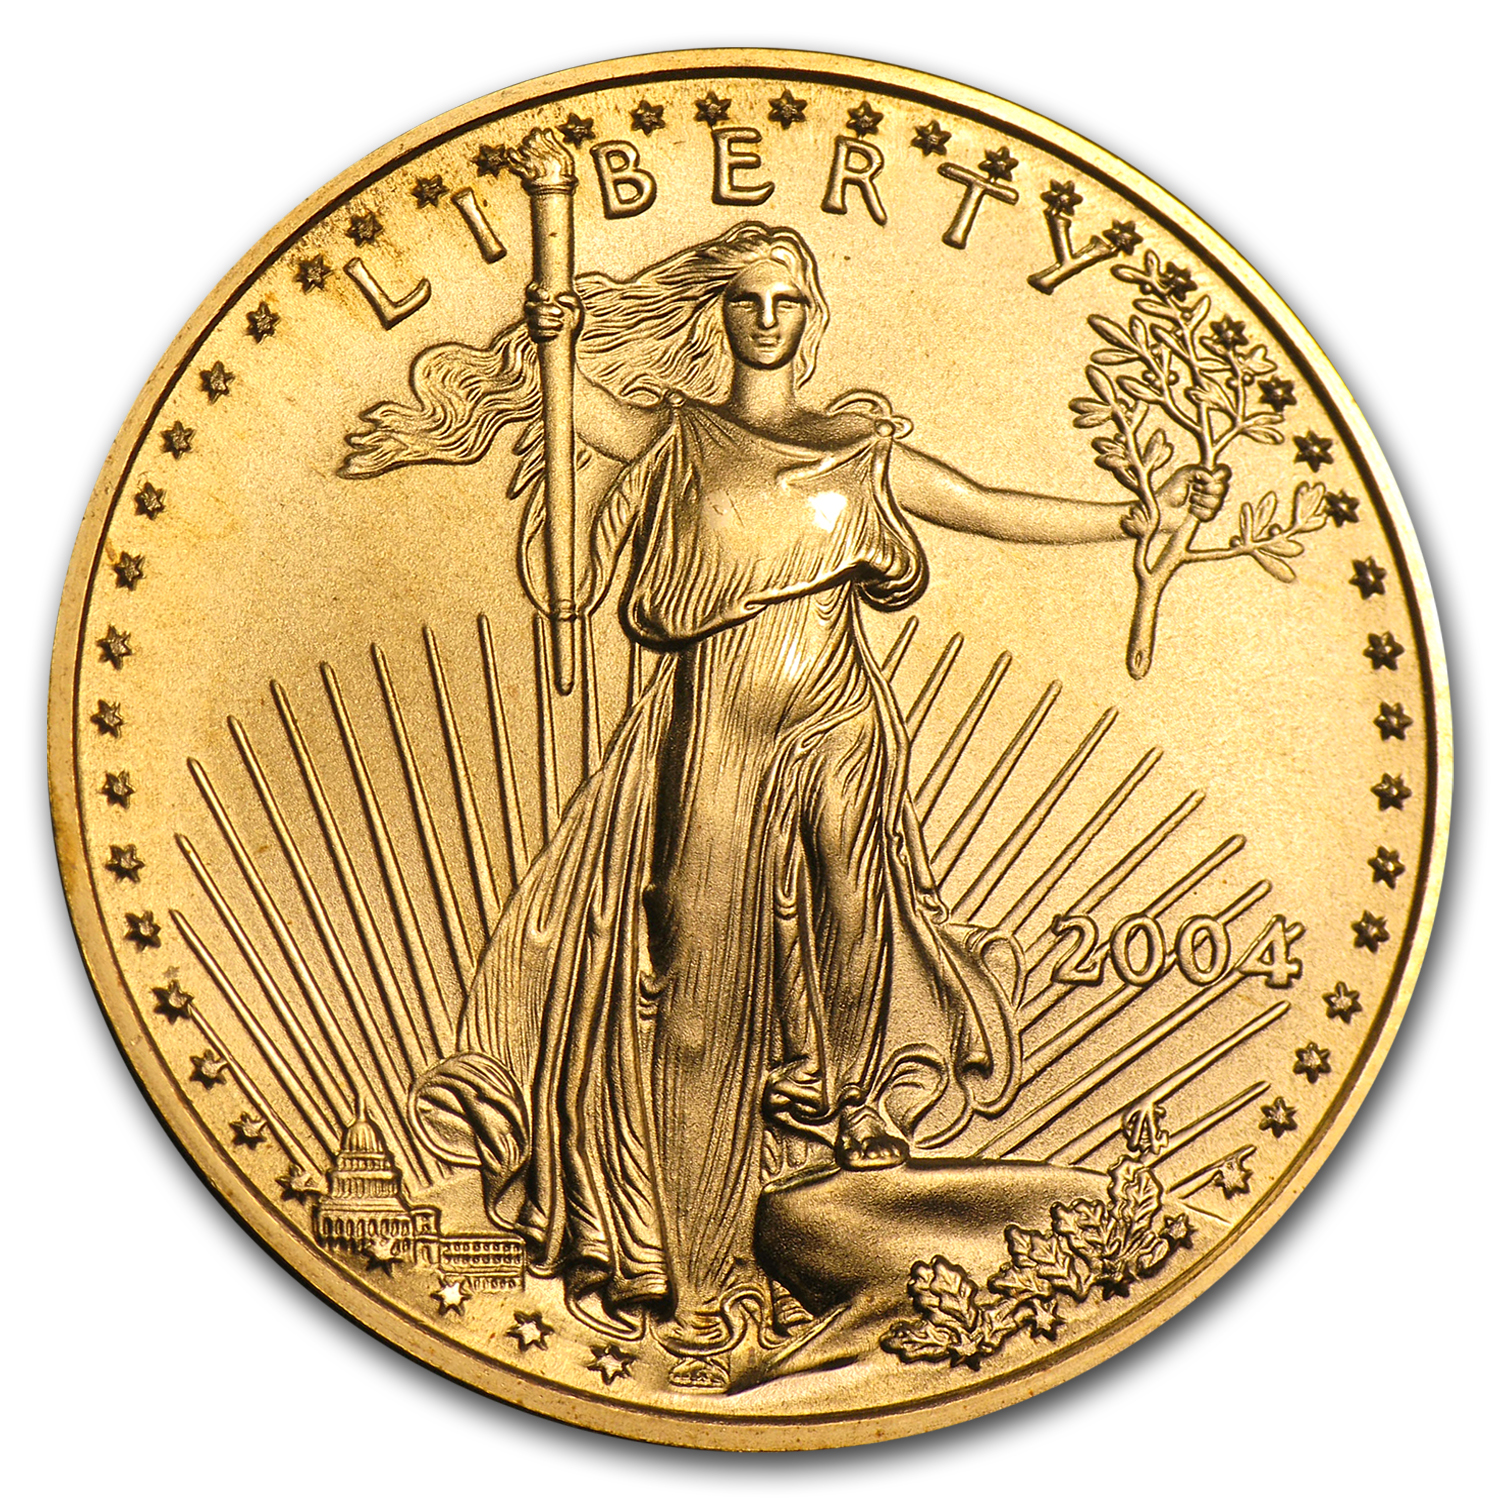 2004 1/2 oz Gold American Eagle BU